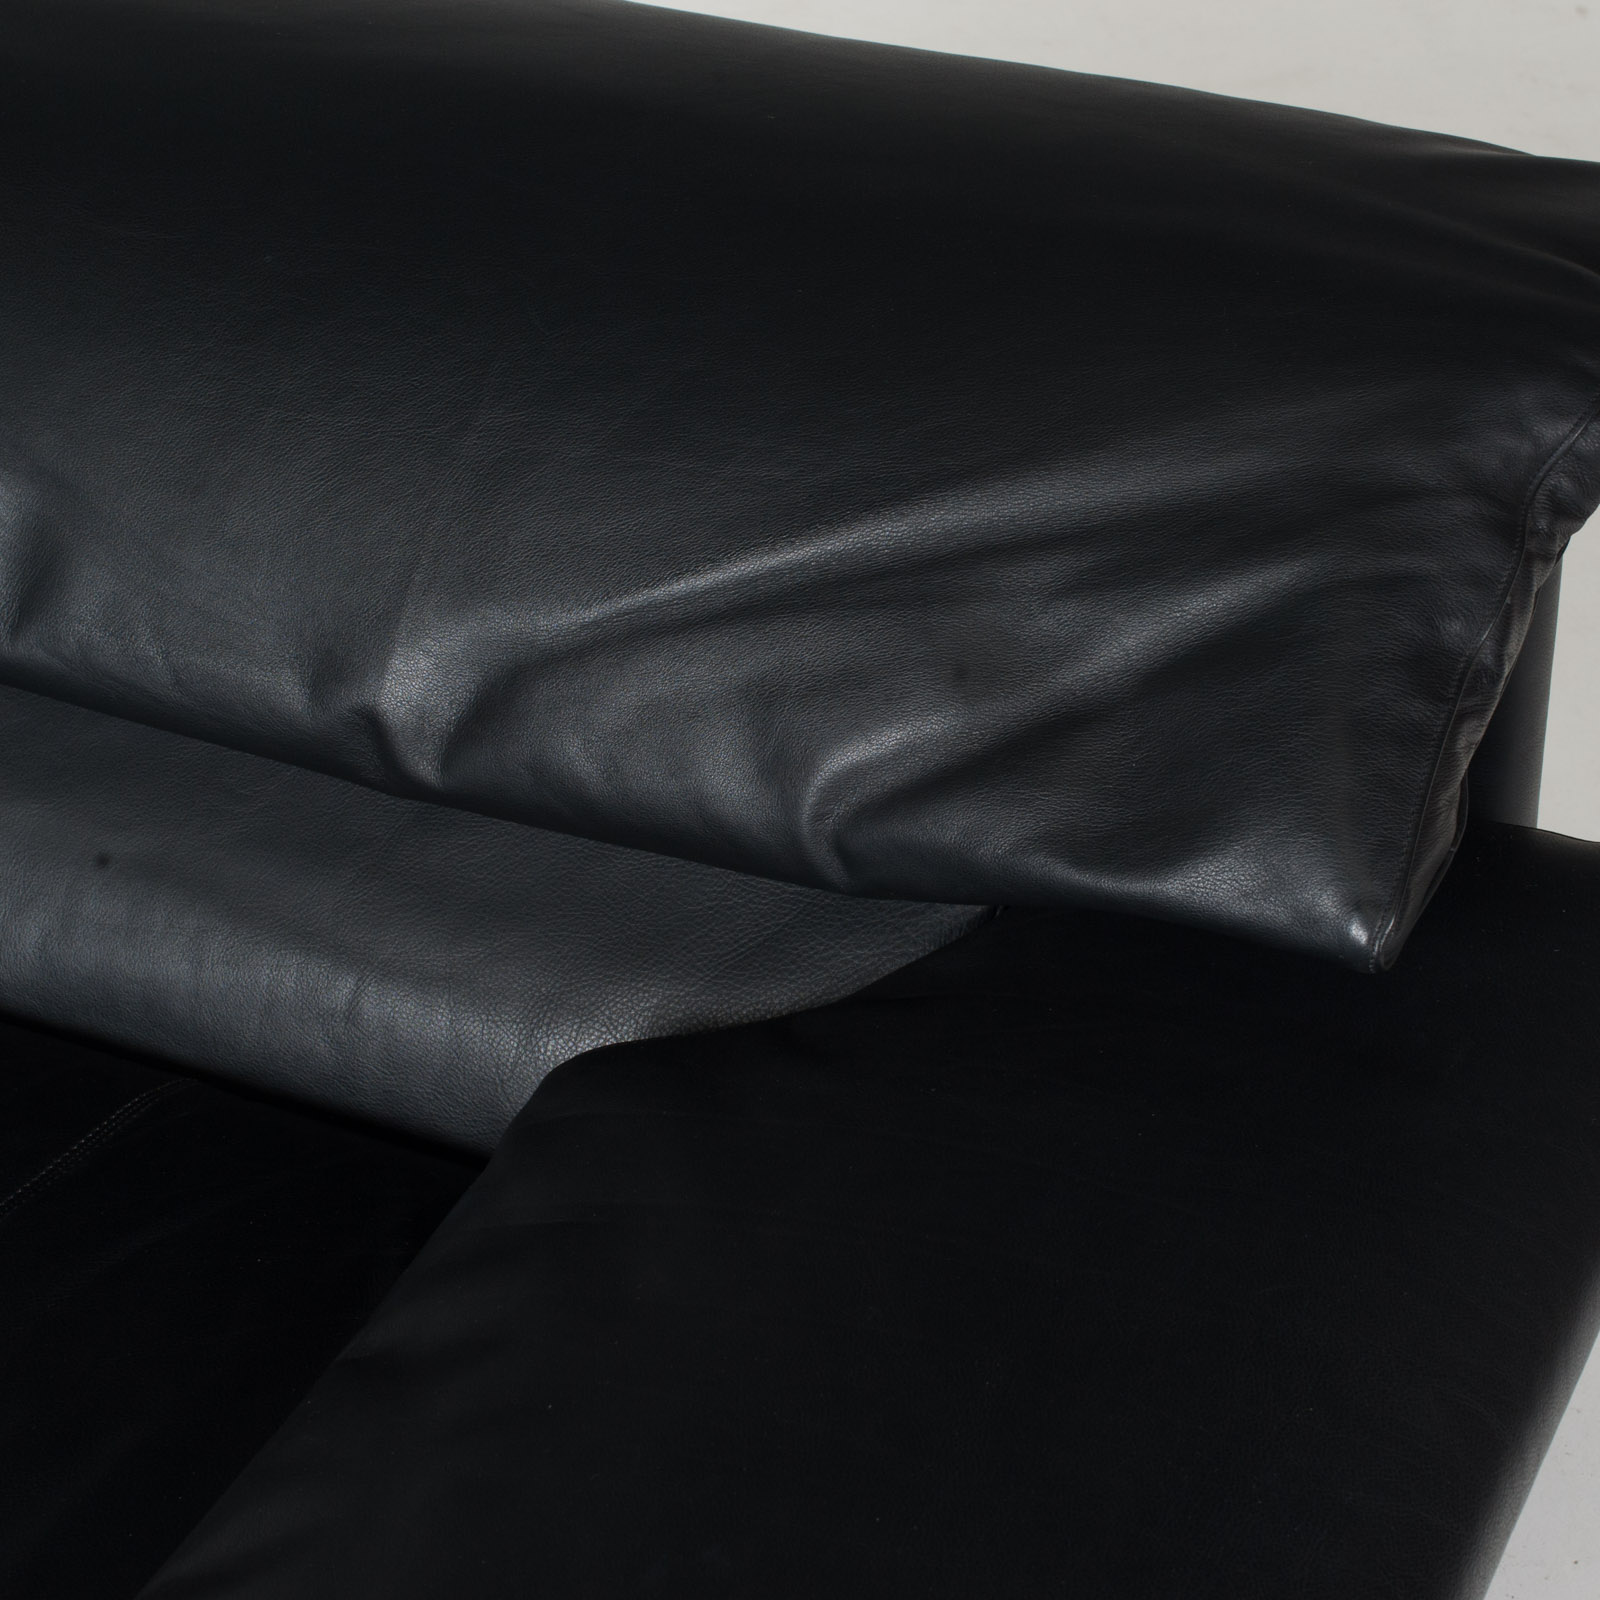 Alanda Armchair By Paolo Piva For B&b Italia In Black Leather, 1980s, Italy 9